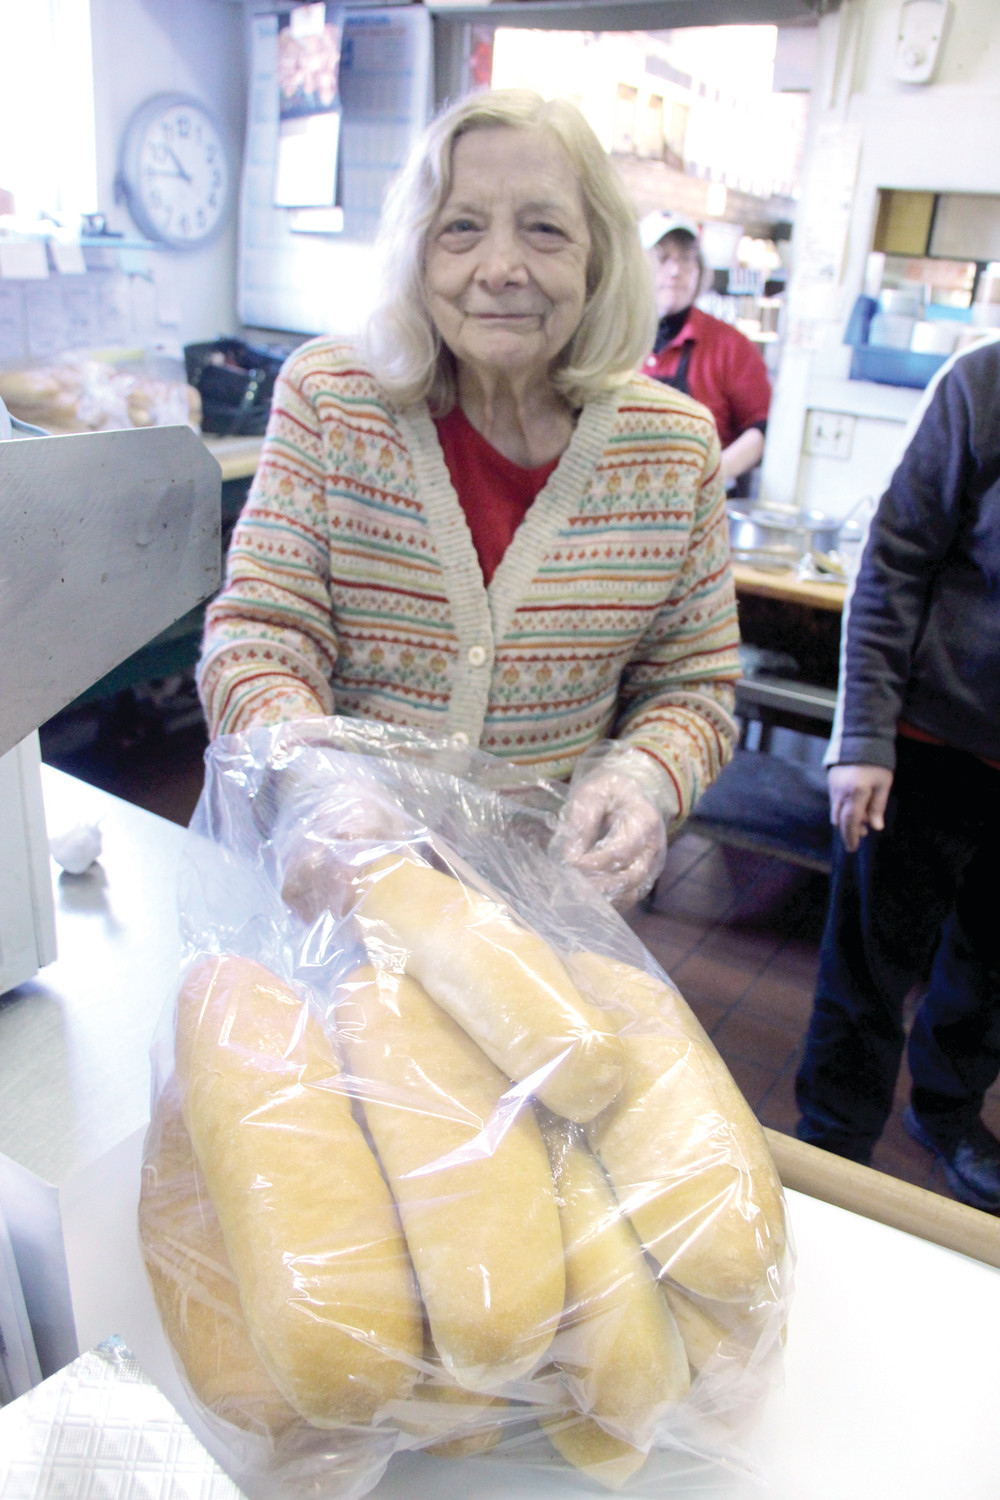 MAKING READY: Nancy Longiaru prepares rolls for Friday's lunch crowd at the Sandwich Junction. The shop was jamming and they made an estimated 200 sandwiches.